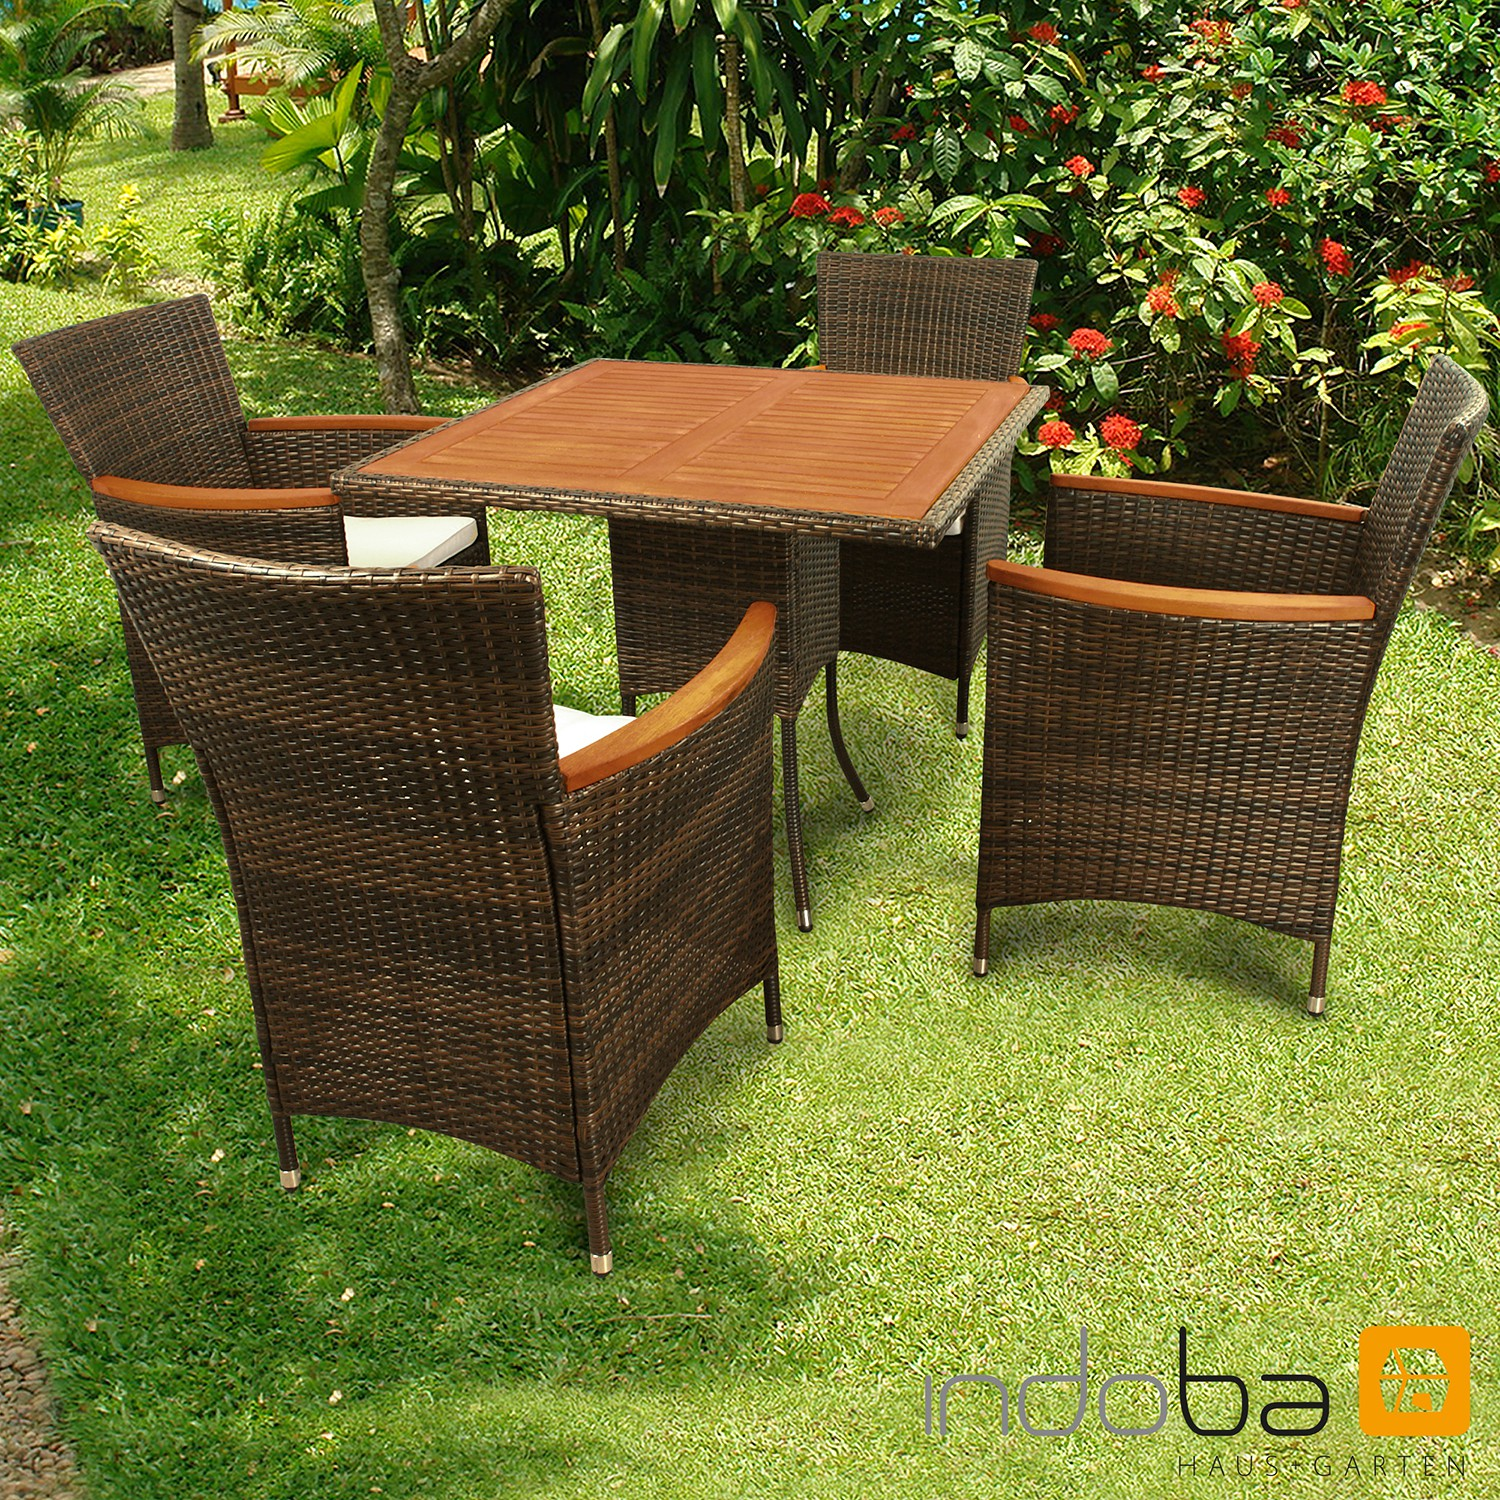 gartenm bel set 5 teilig valencia polyrattan braun gartenset serie valencia ind 70117. Black Bedroom Furniture Sets. Home Design Ideas